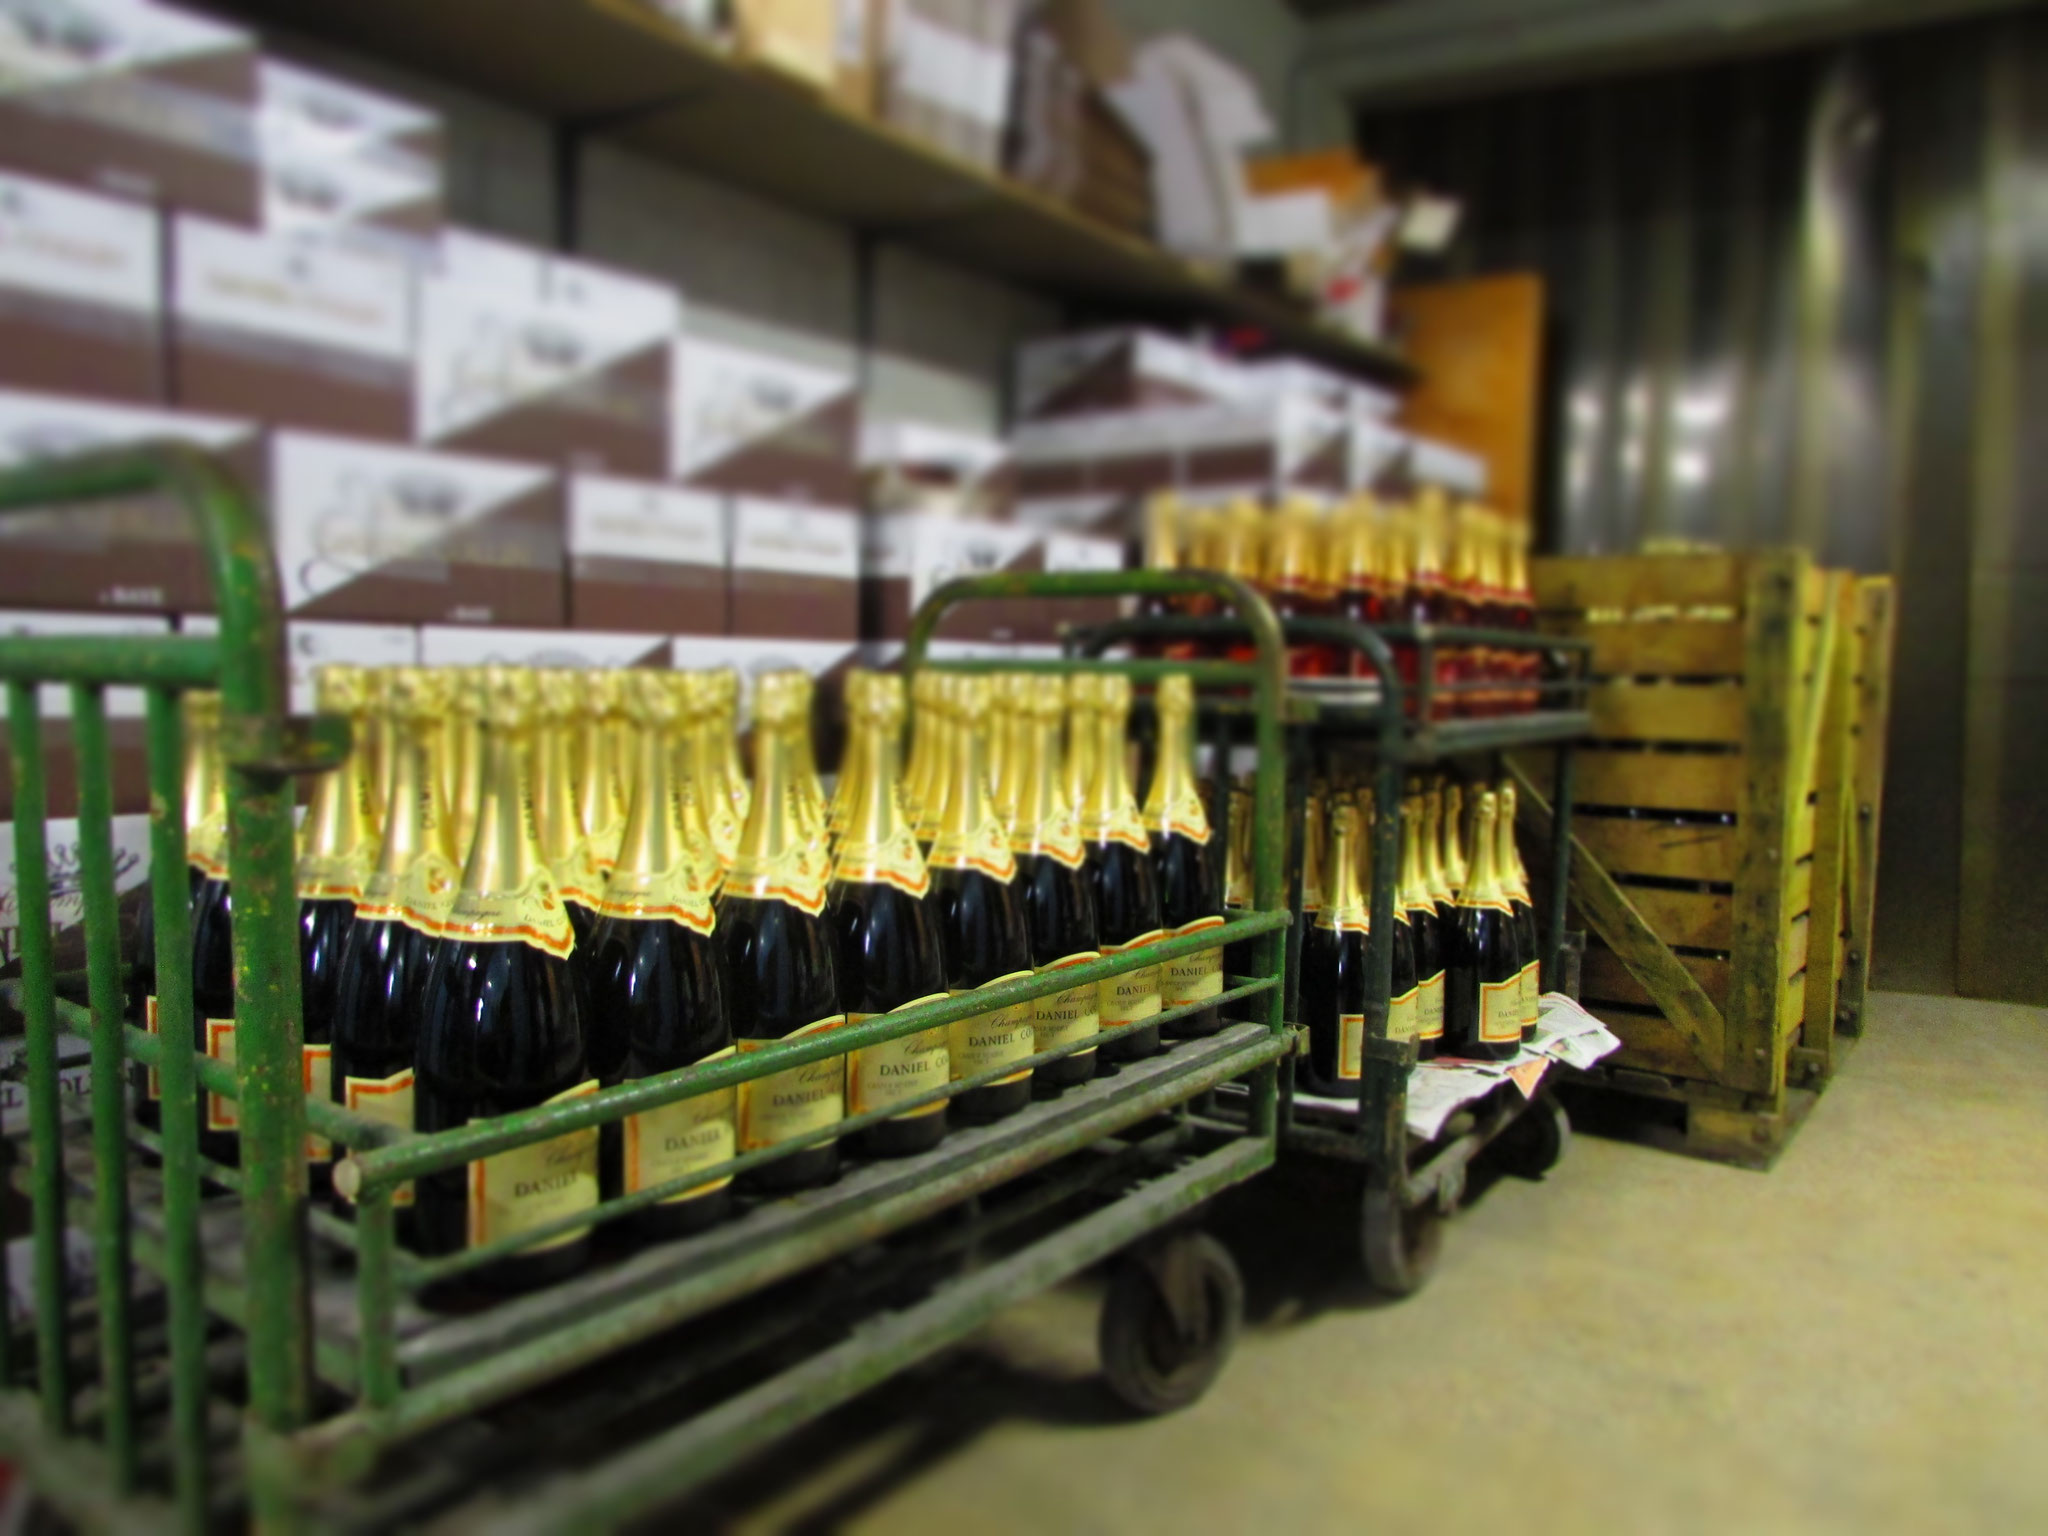 In the cellar, bottles recently dressed are waiting for packing